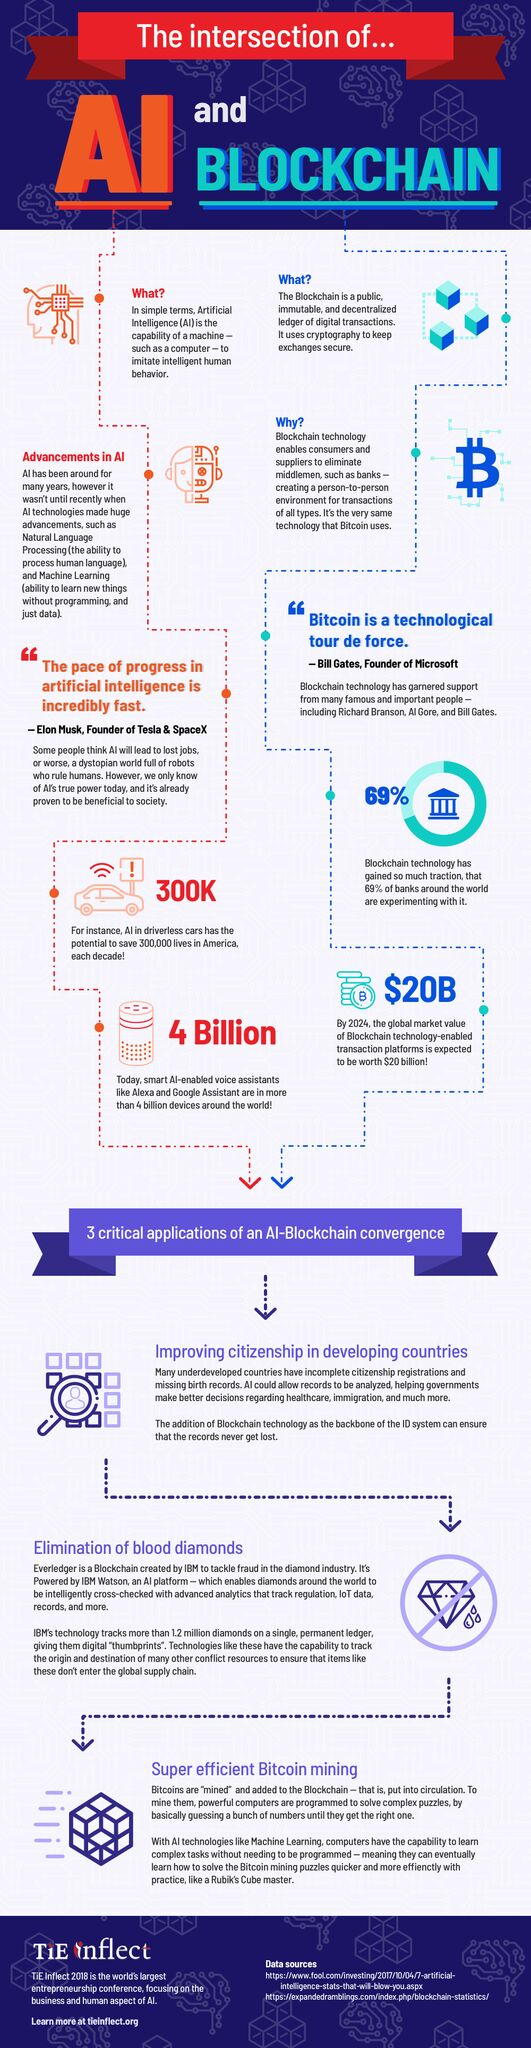 Infographic: The Convergence of AI and Blockchain - My